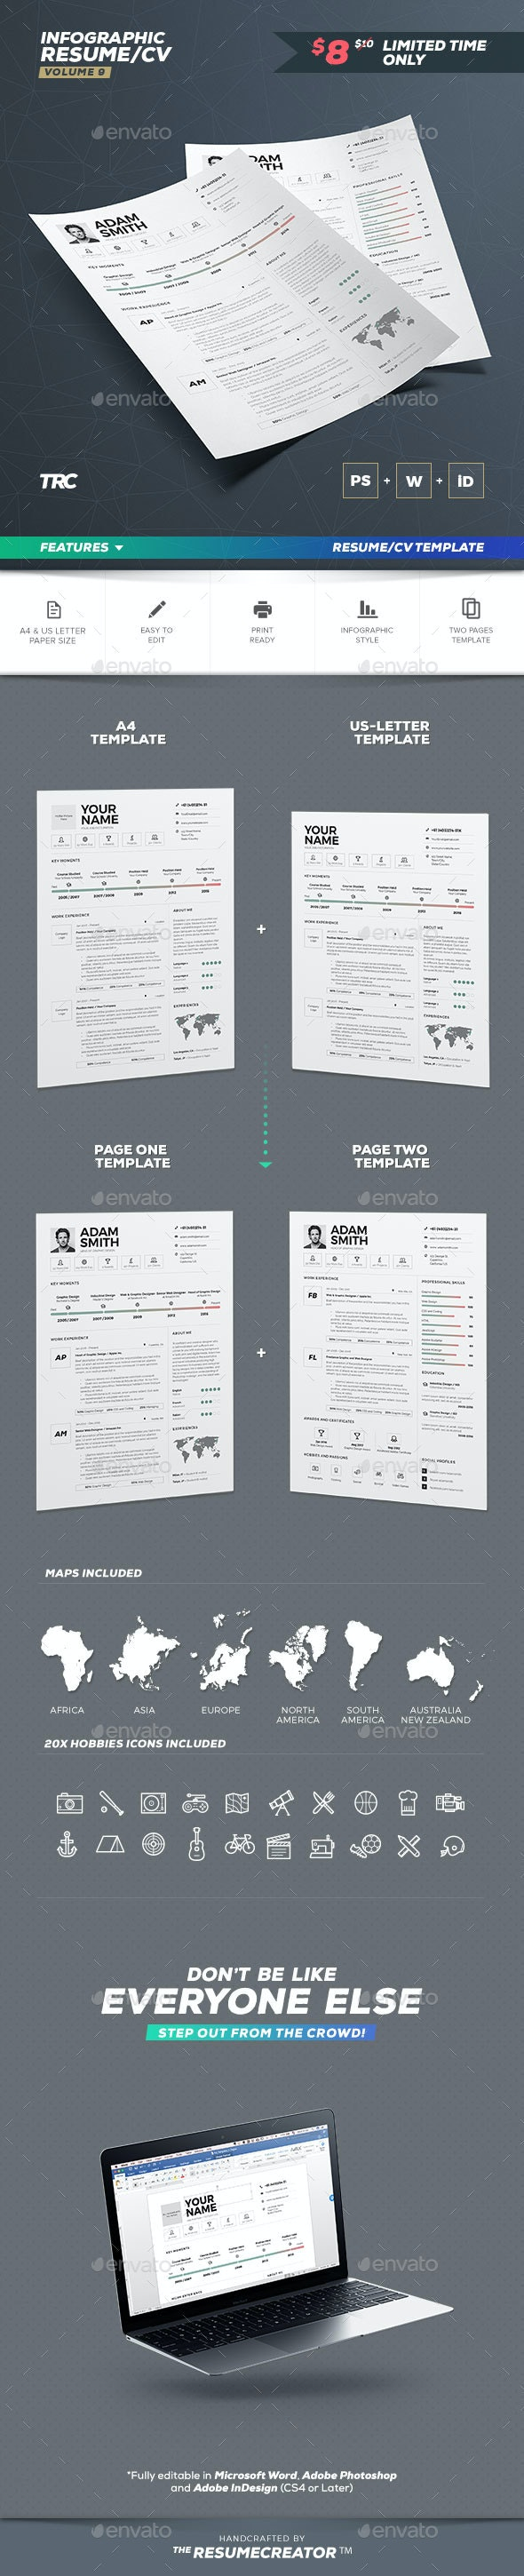 Infographic Resume/Cv Template Volume 9 - Resumes Stationery